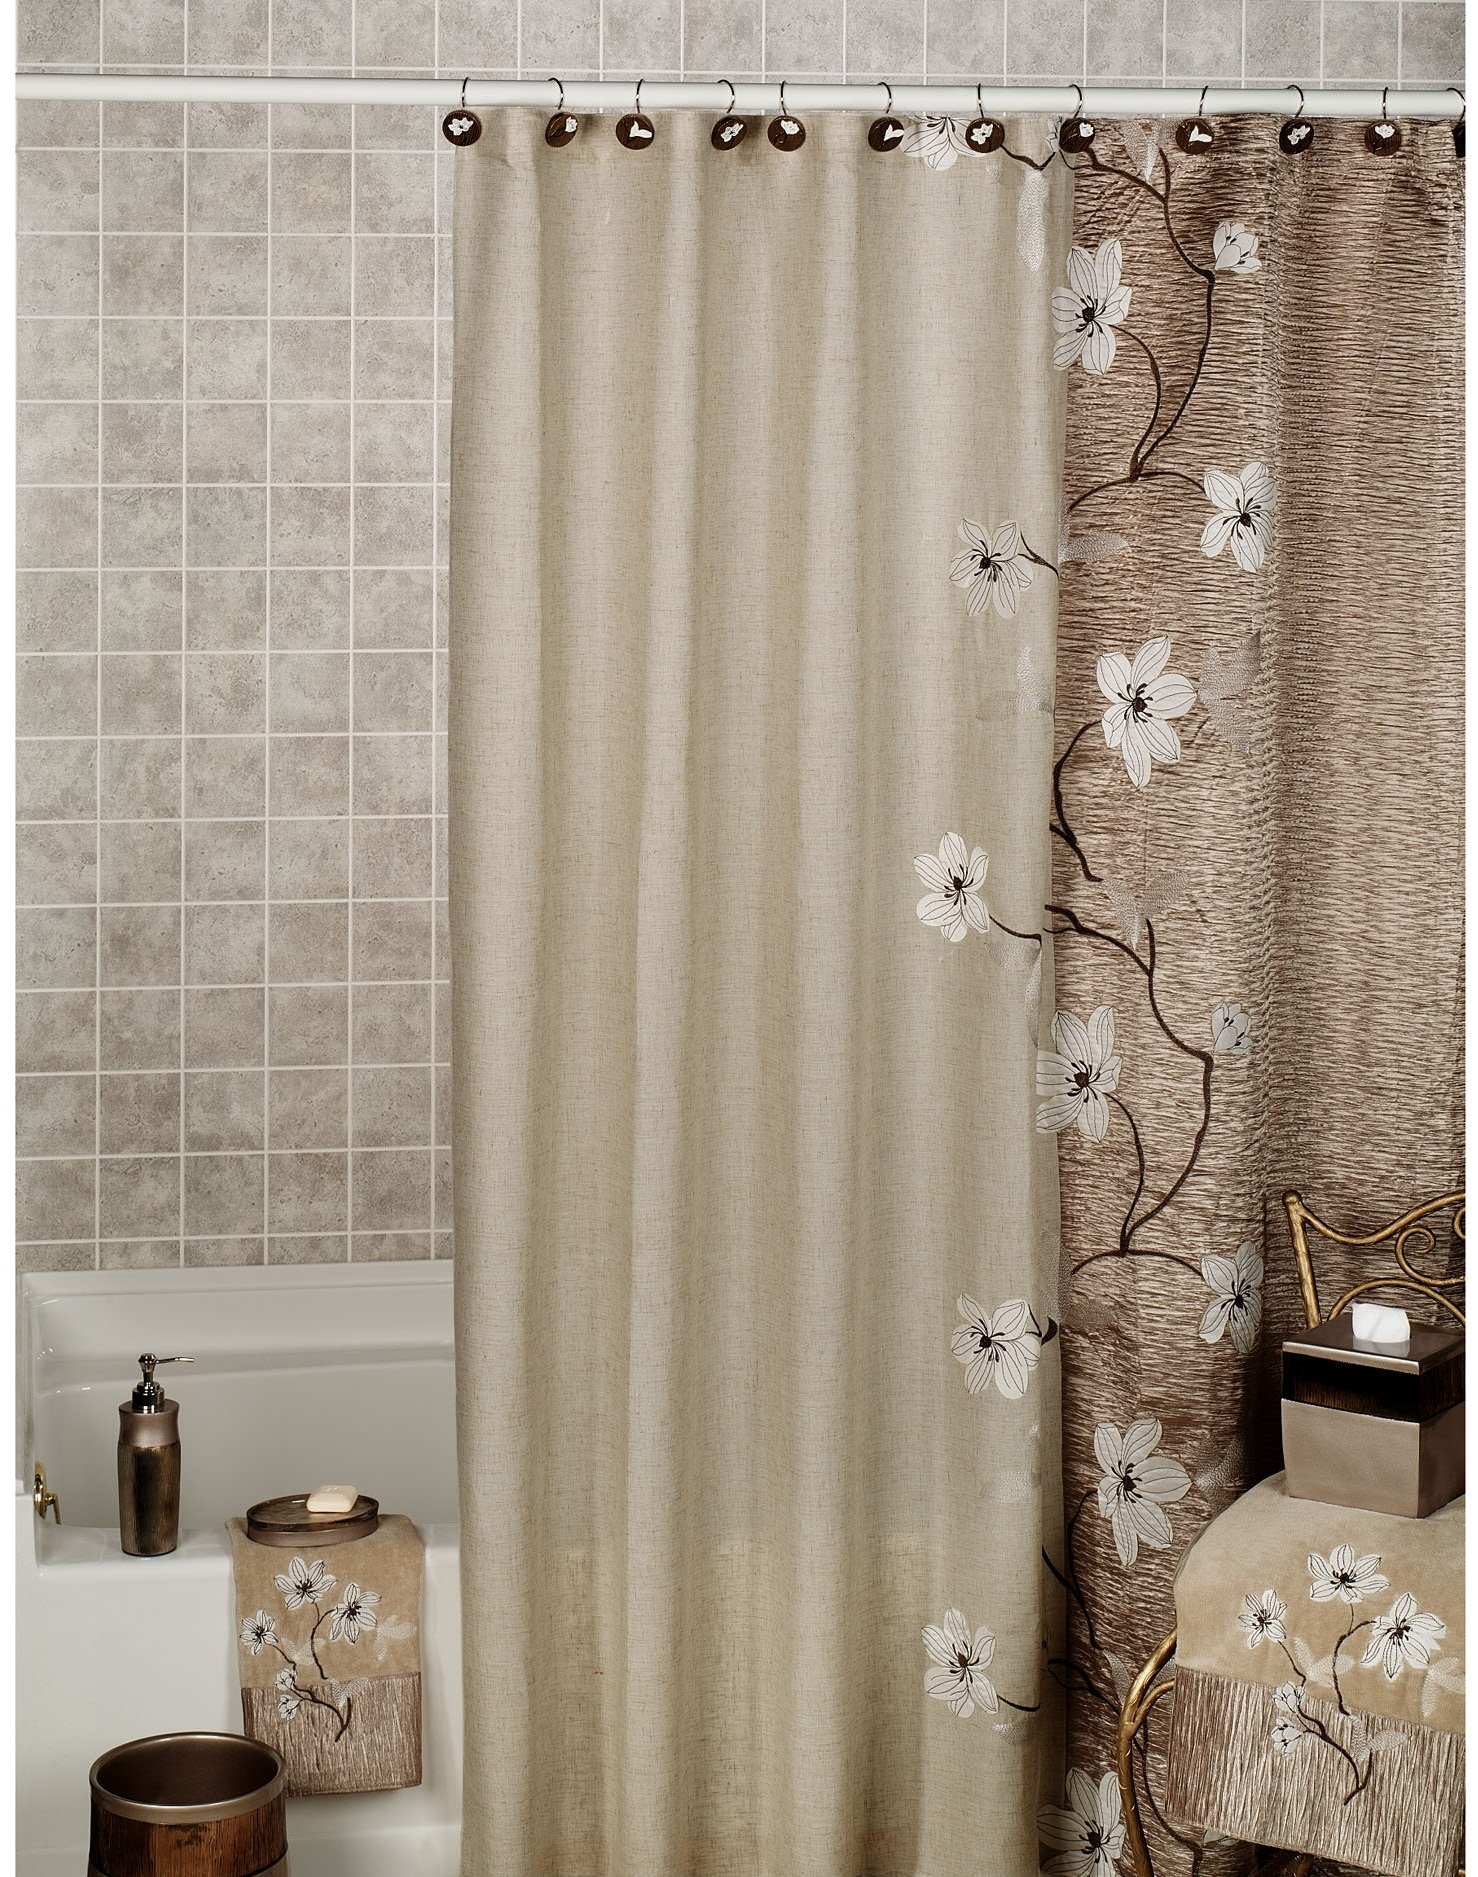 Extra Long Blackout Curtains Home Design Ideas Gigforest With Extra Long Thermal Curtains (Image 5 of 15)